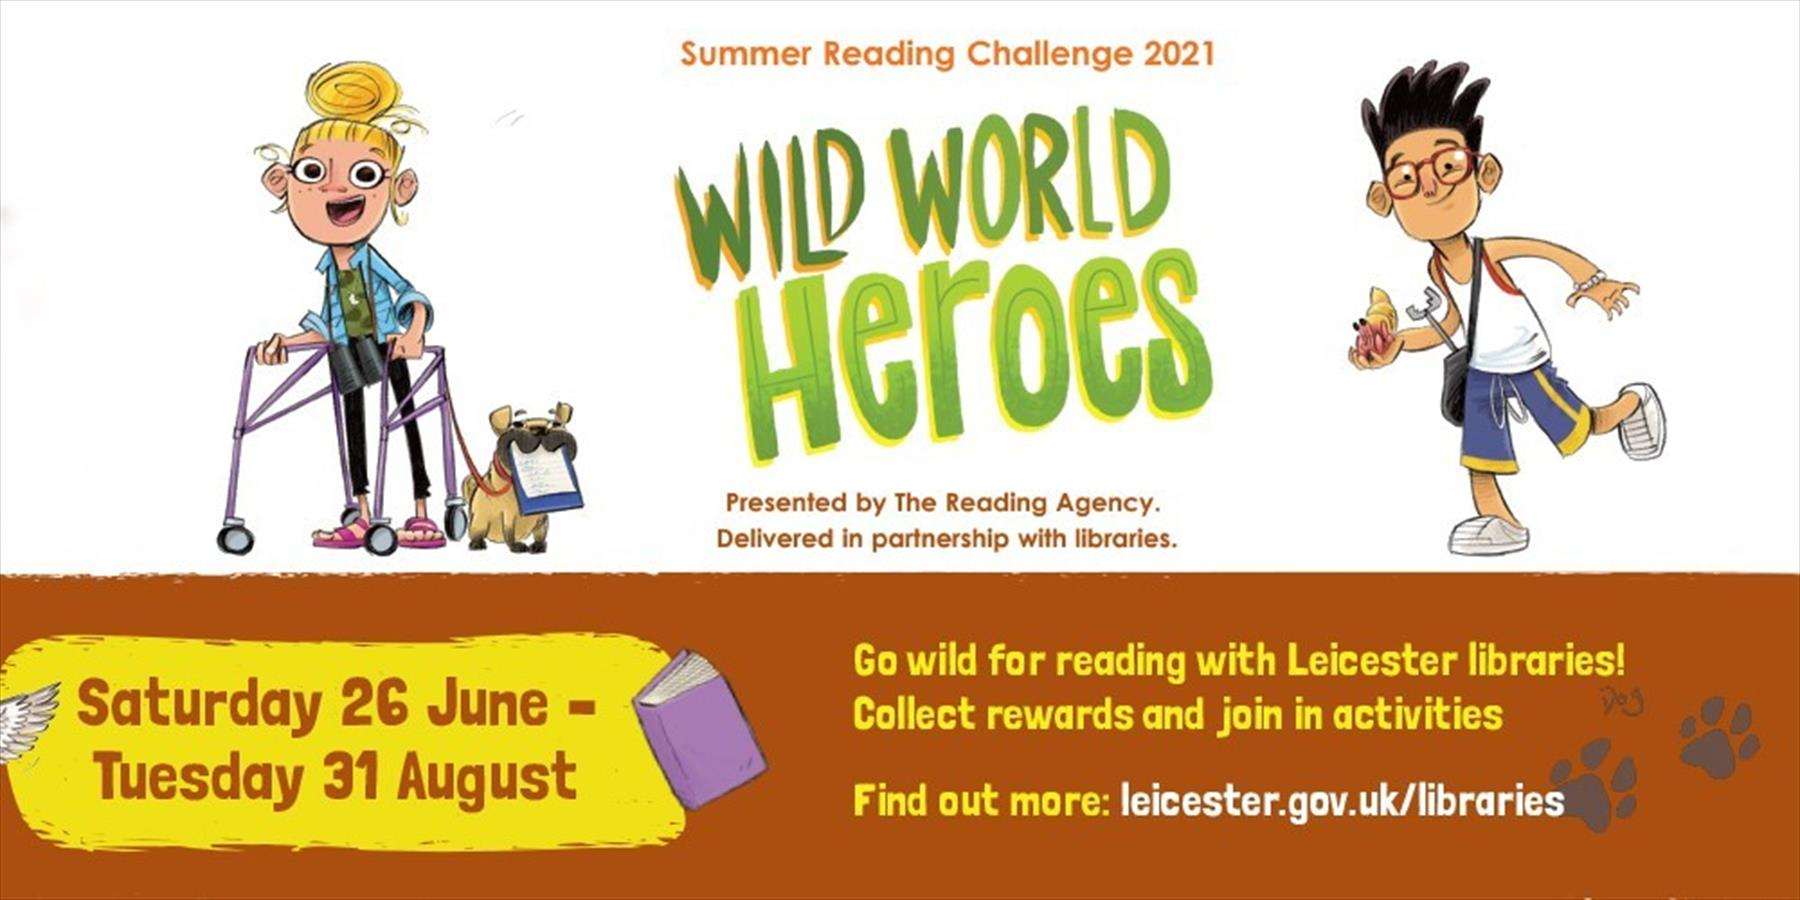 Wild World Heroes - Summer Reading Challenge 2021 - 26 June to 31 August. Visit www.leicester.gov.uk/libraries for details.